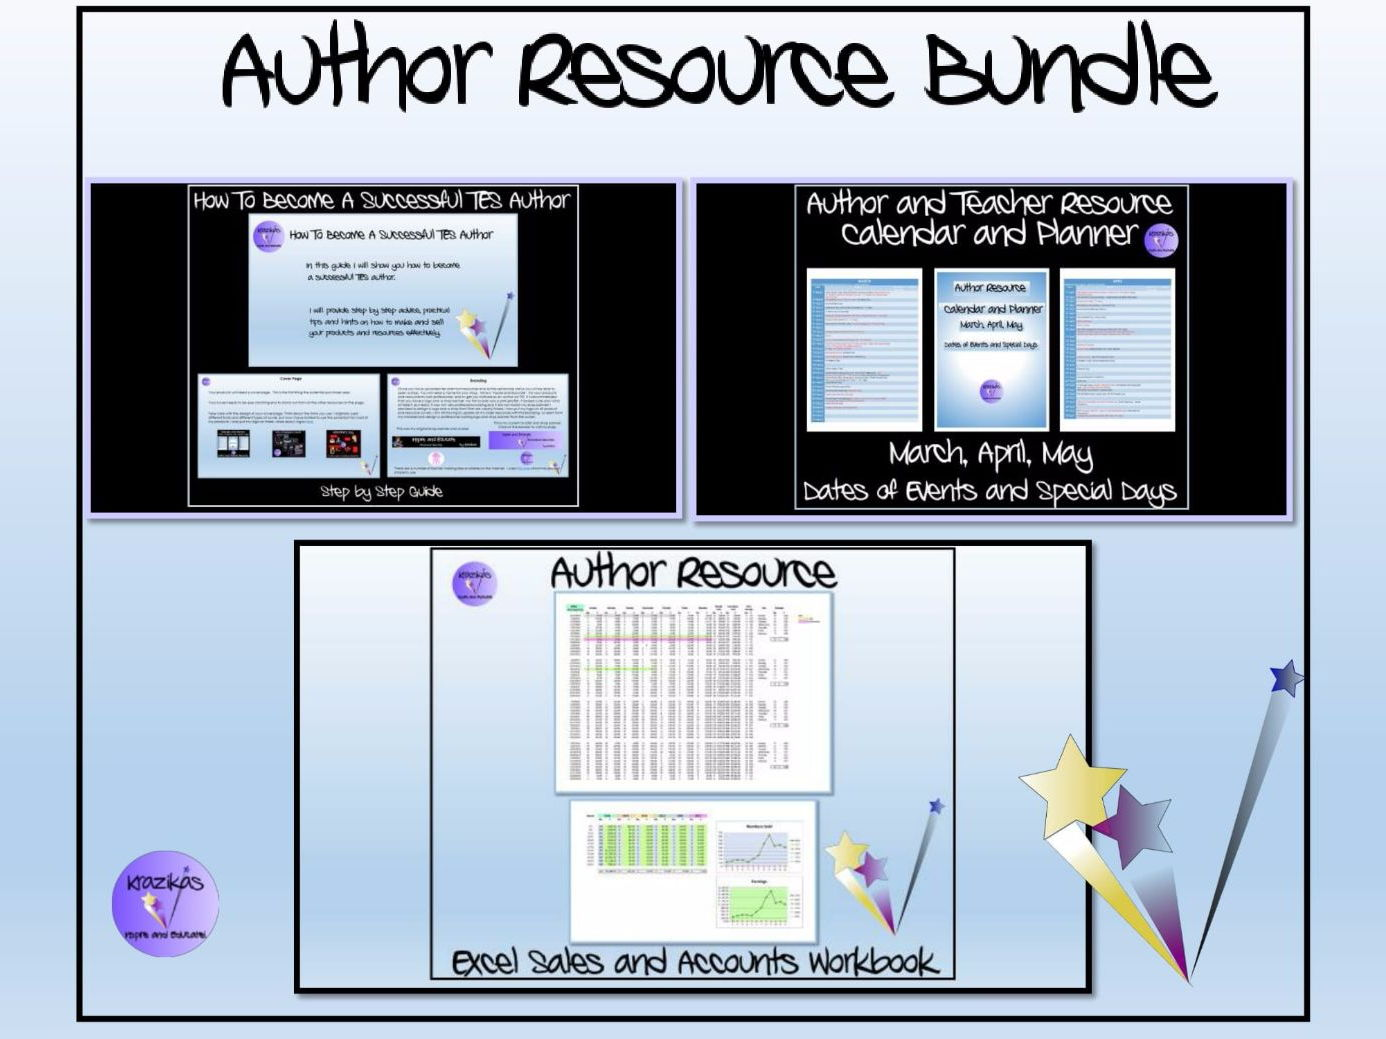 TES Author Resource Bundle by a Top 10 Author - Guide - Hints and Tips, Excel Sales and Accounts Tracker, Author Calendar and Planner - Everything you need for this New Year!